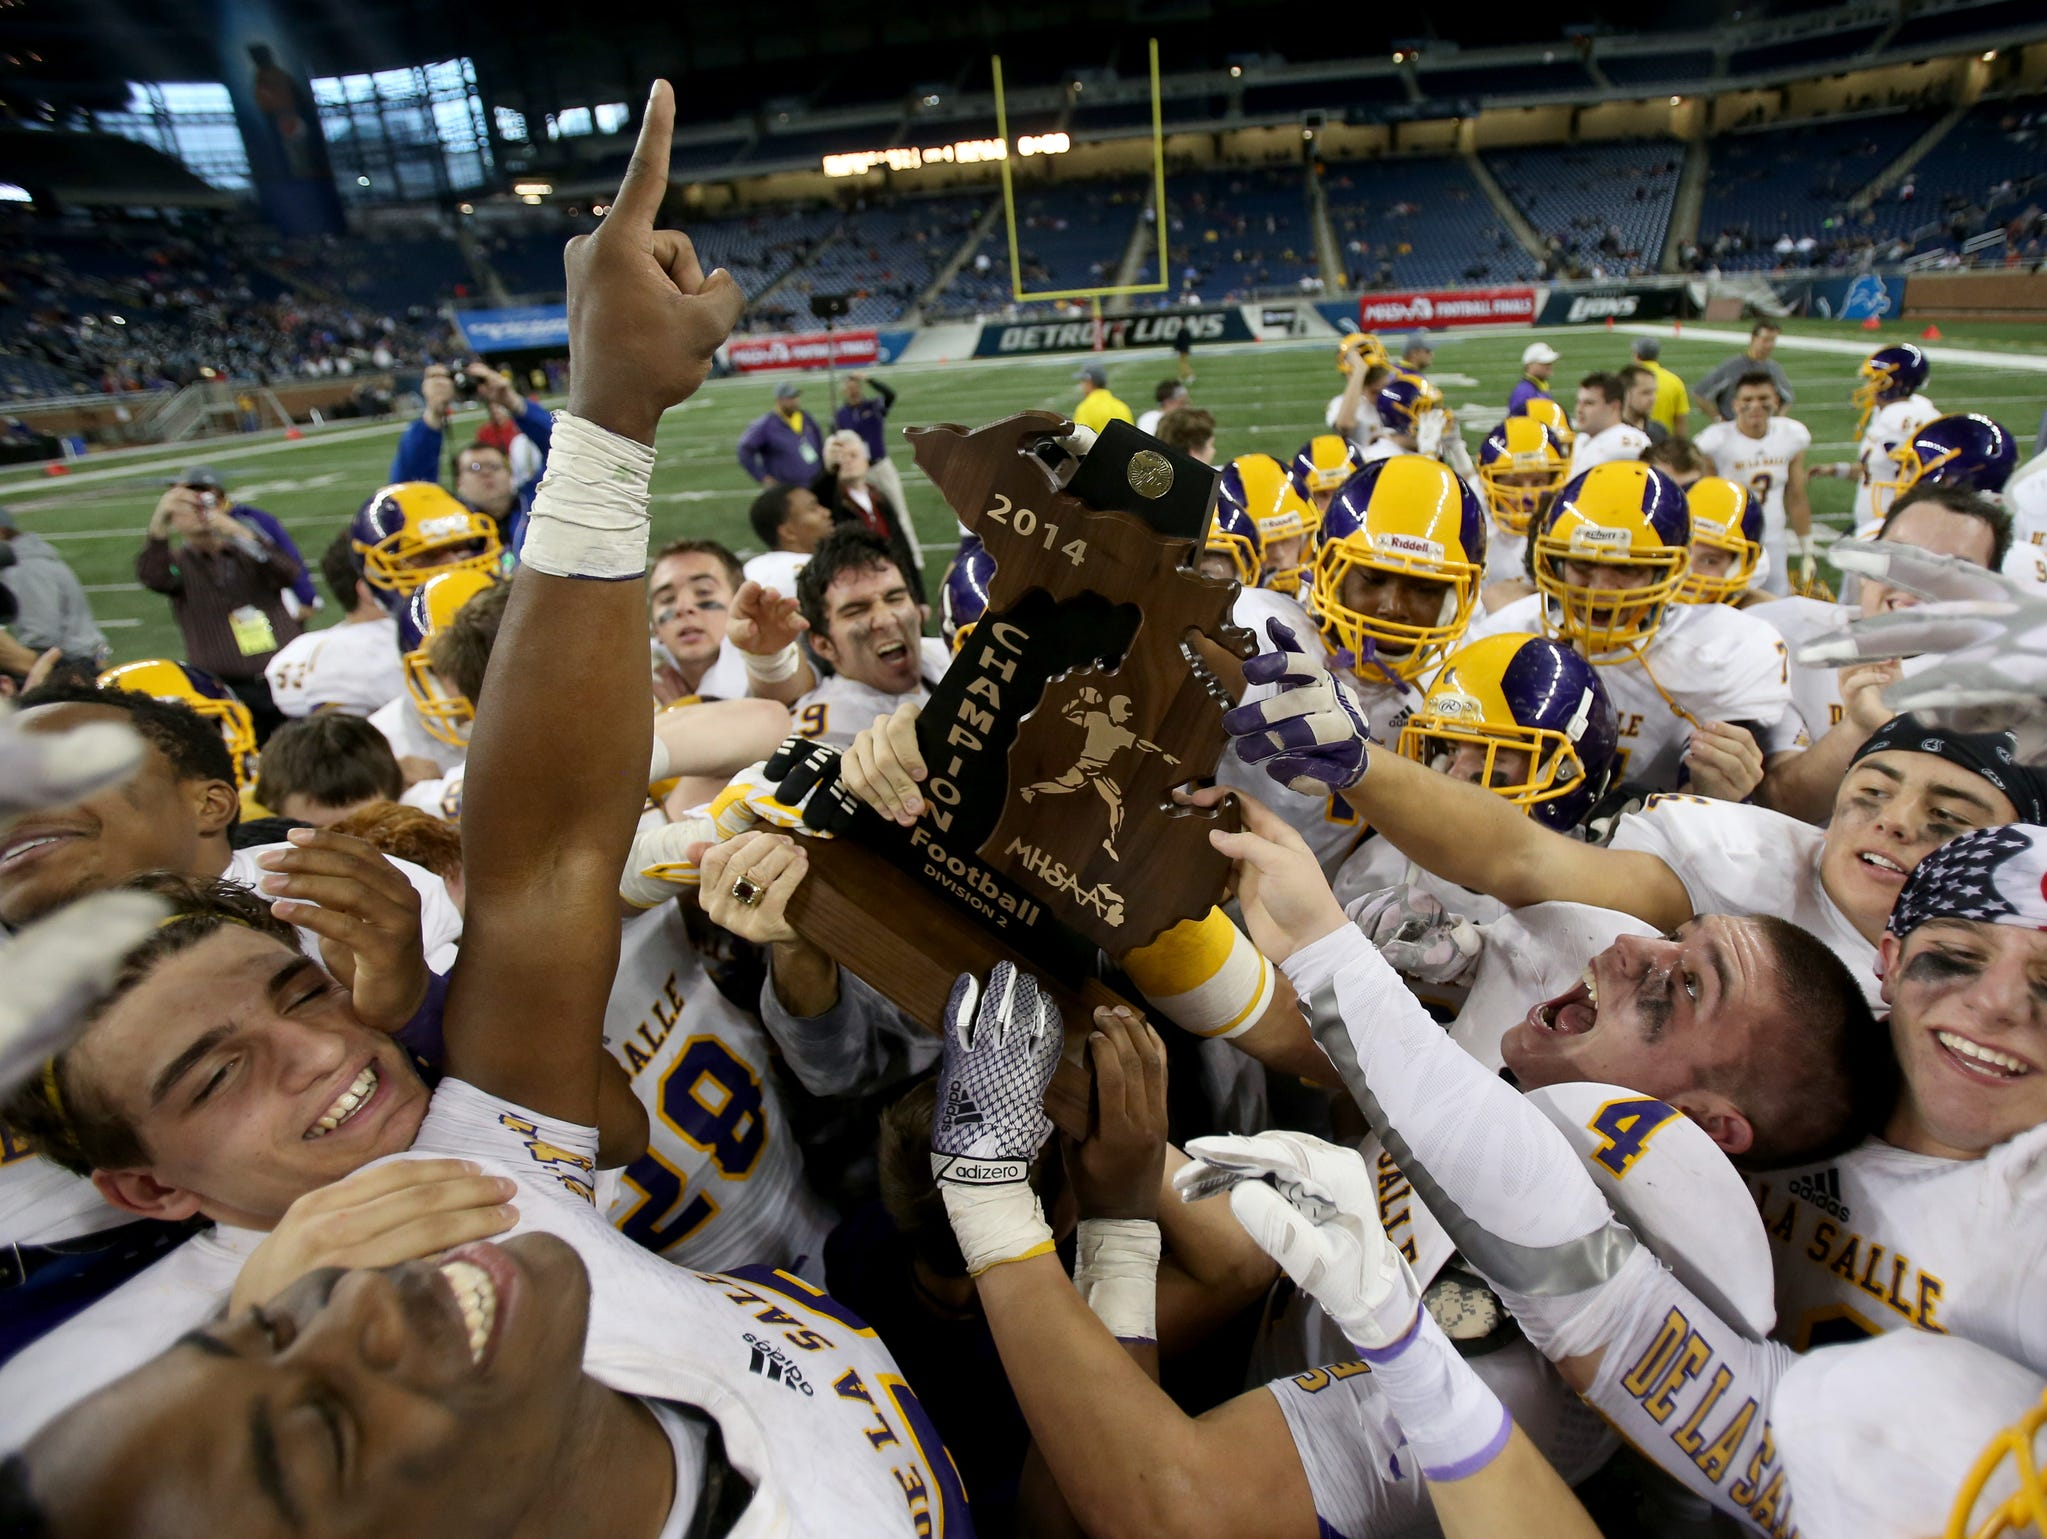 Warren De La Salle celebrates its 44-8 win over Muskegon Mona Shores high school in the Division 2 state title game on Nov. 28, 2014, at Ford Field.